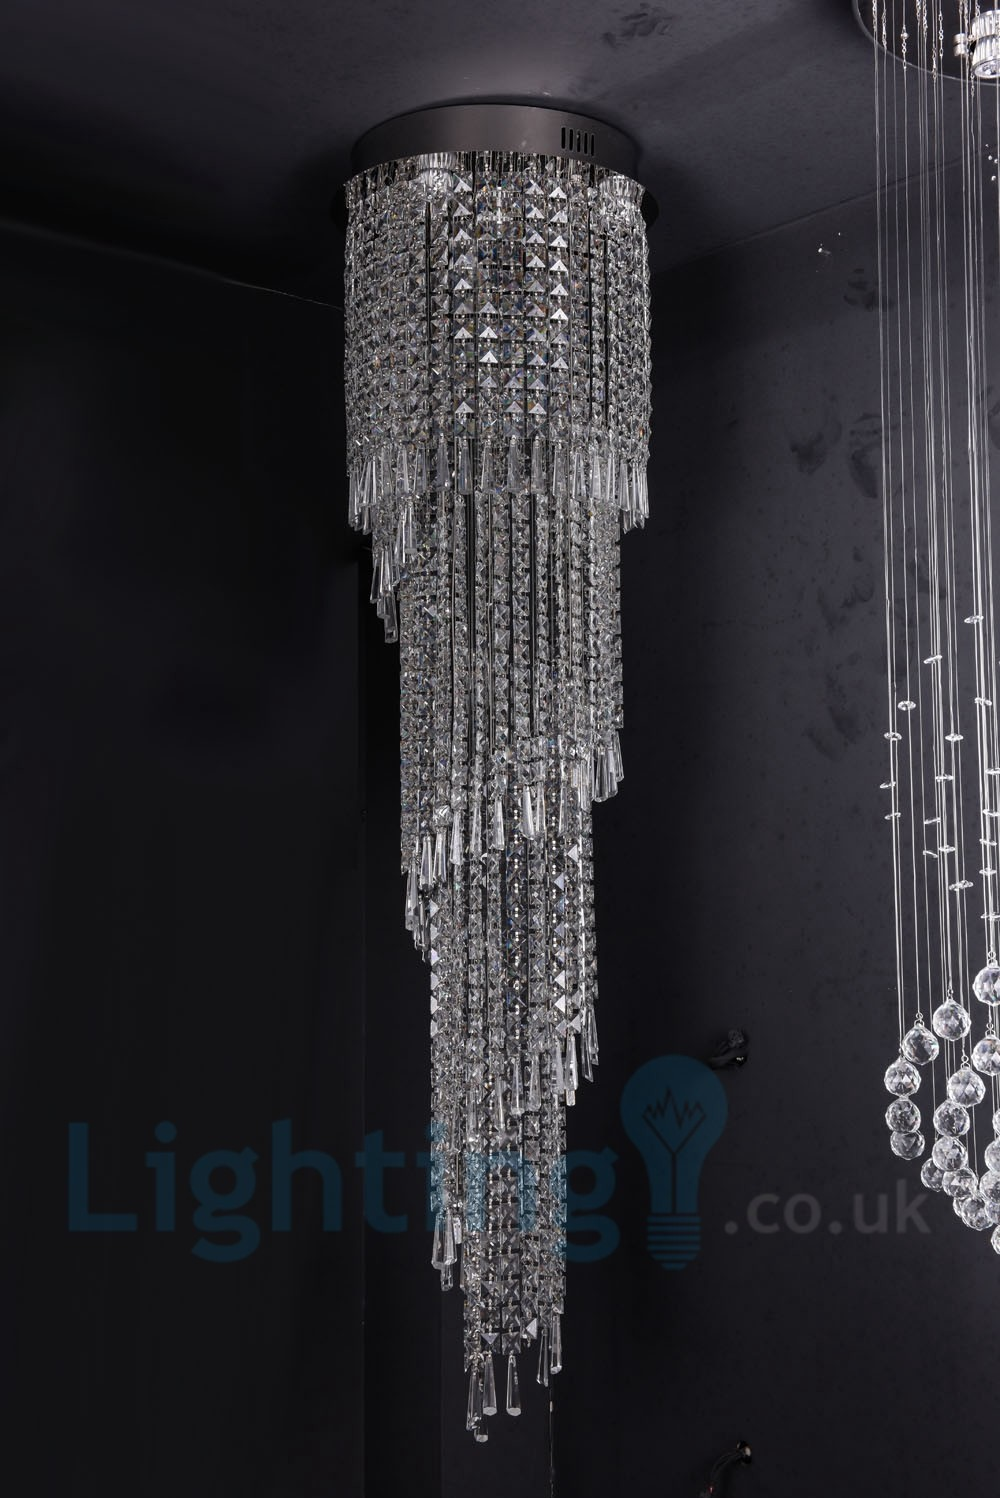 4 X Gu10 8 X G4 150cm Long Crystal Drop Light Modern K9